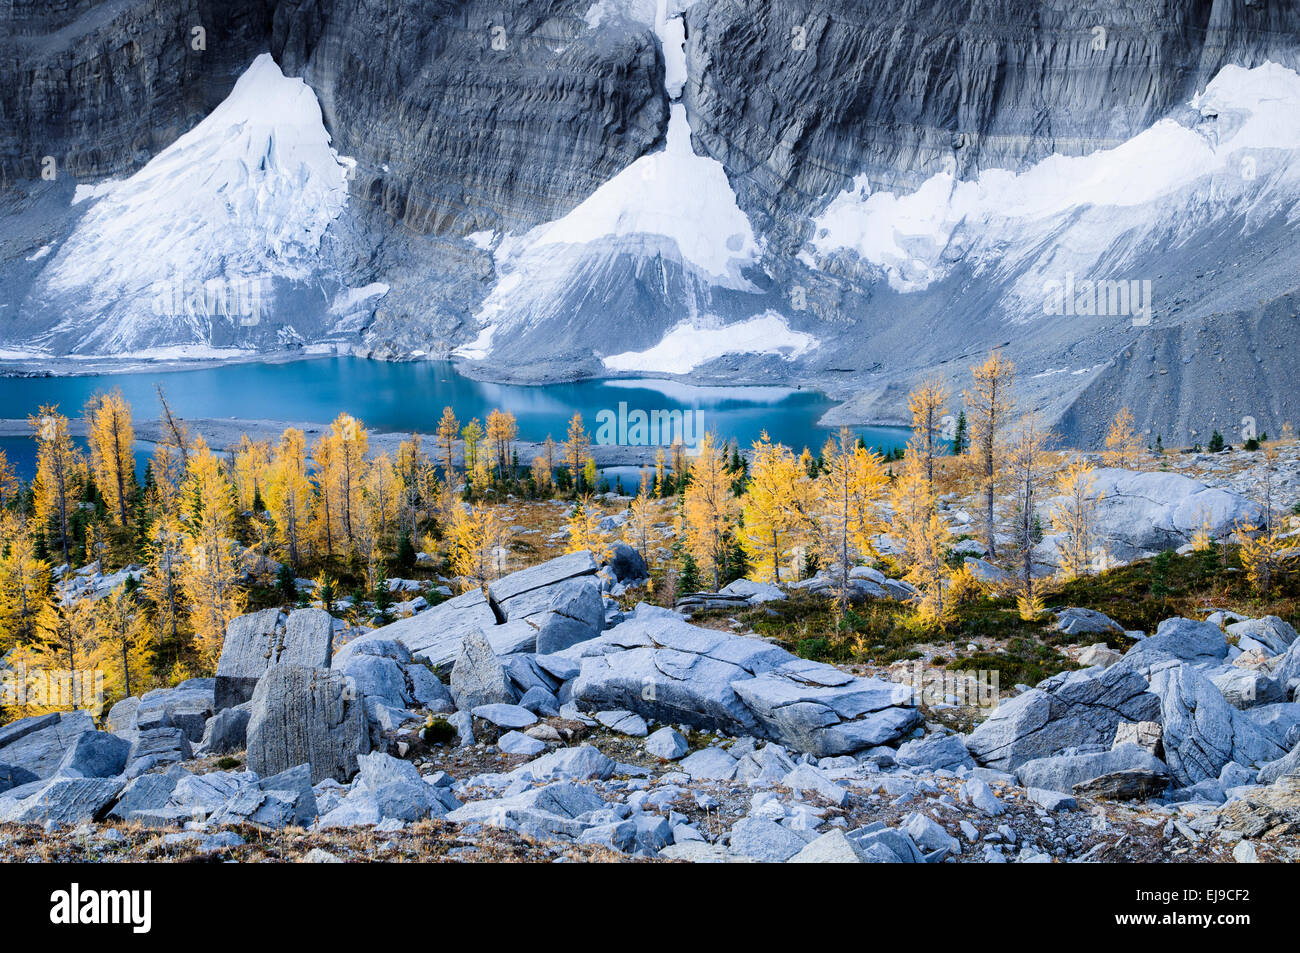 Larch in vibrant yellow Autumn color, the Rockwall at Floe Lake, Kootenay National Park, British Columbia, Canada - Stock Image